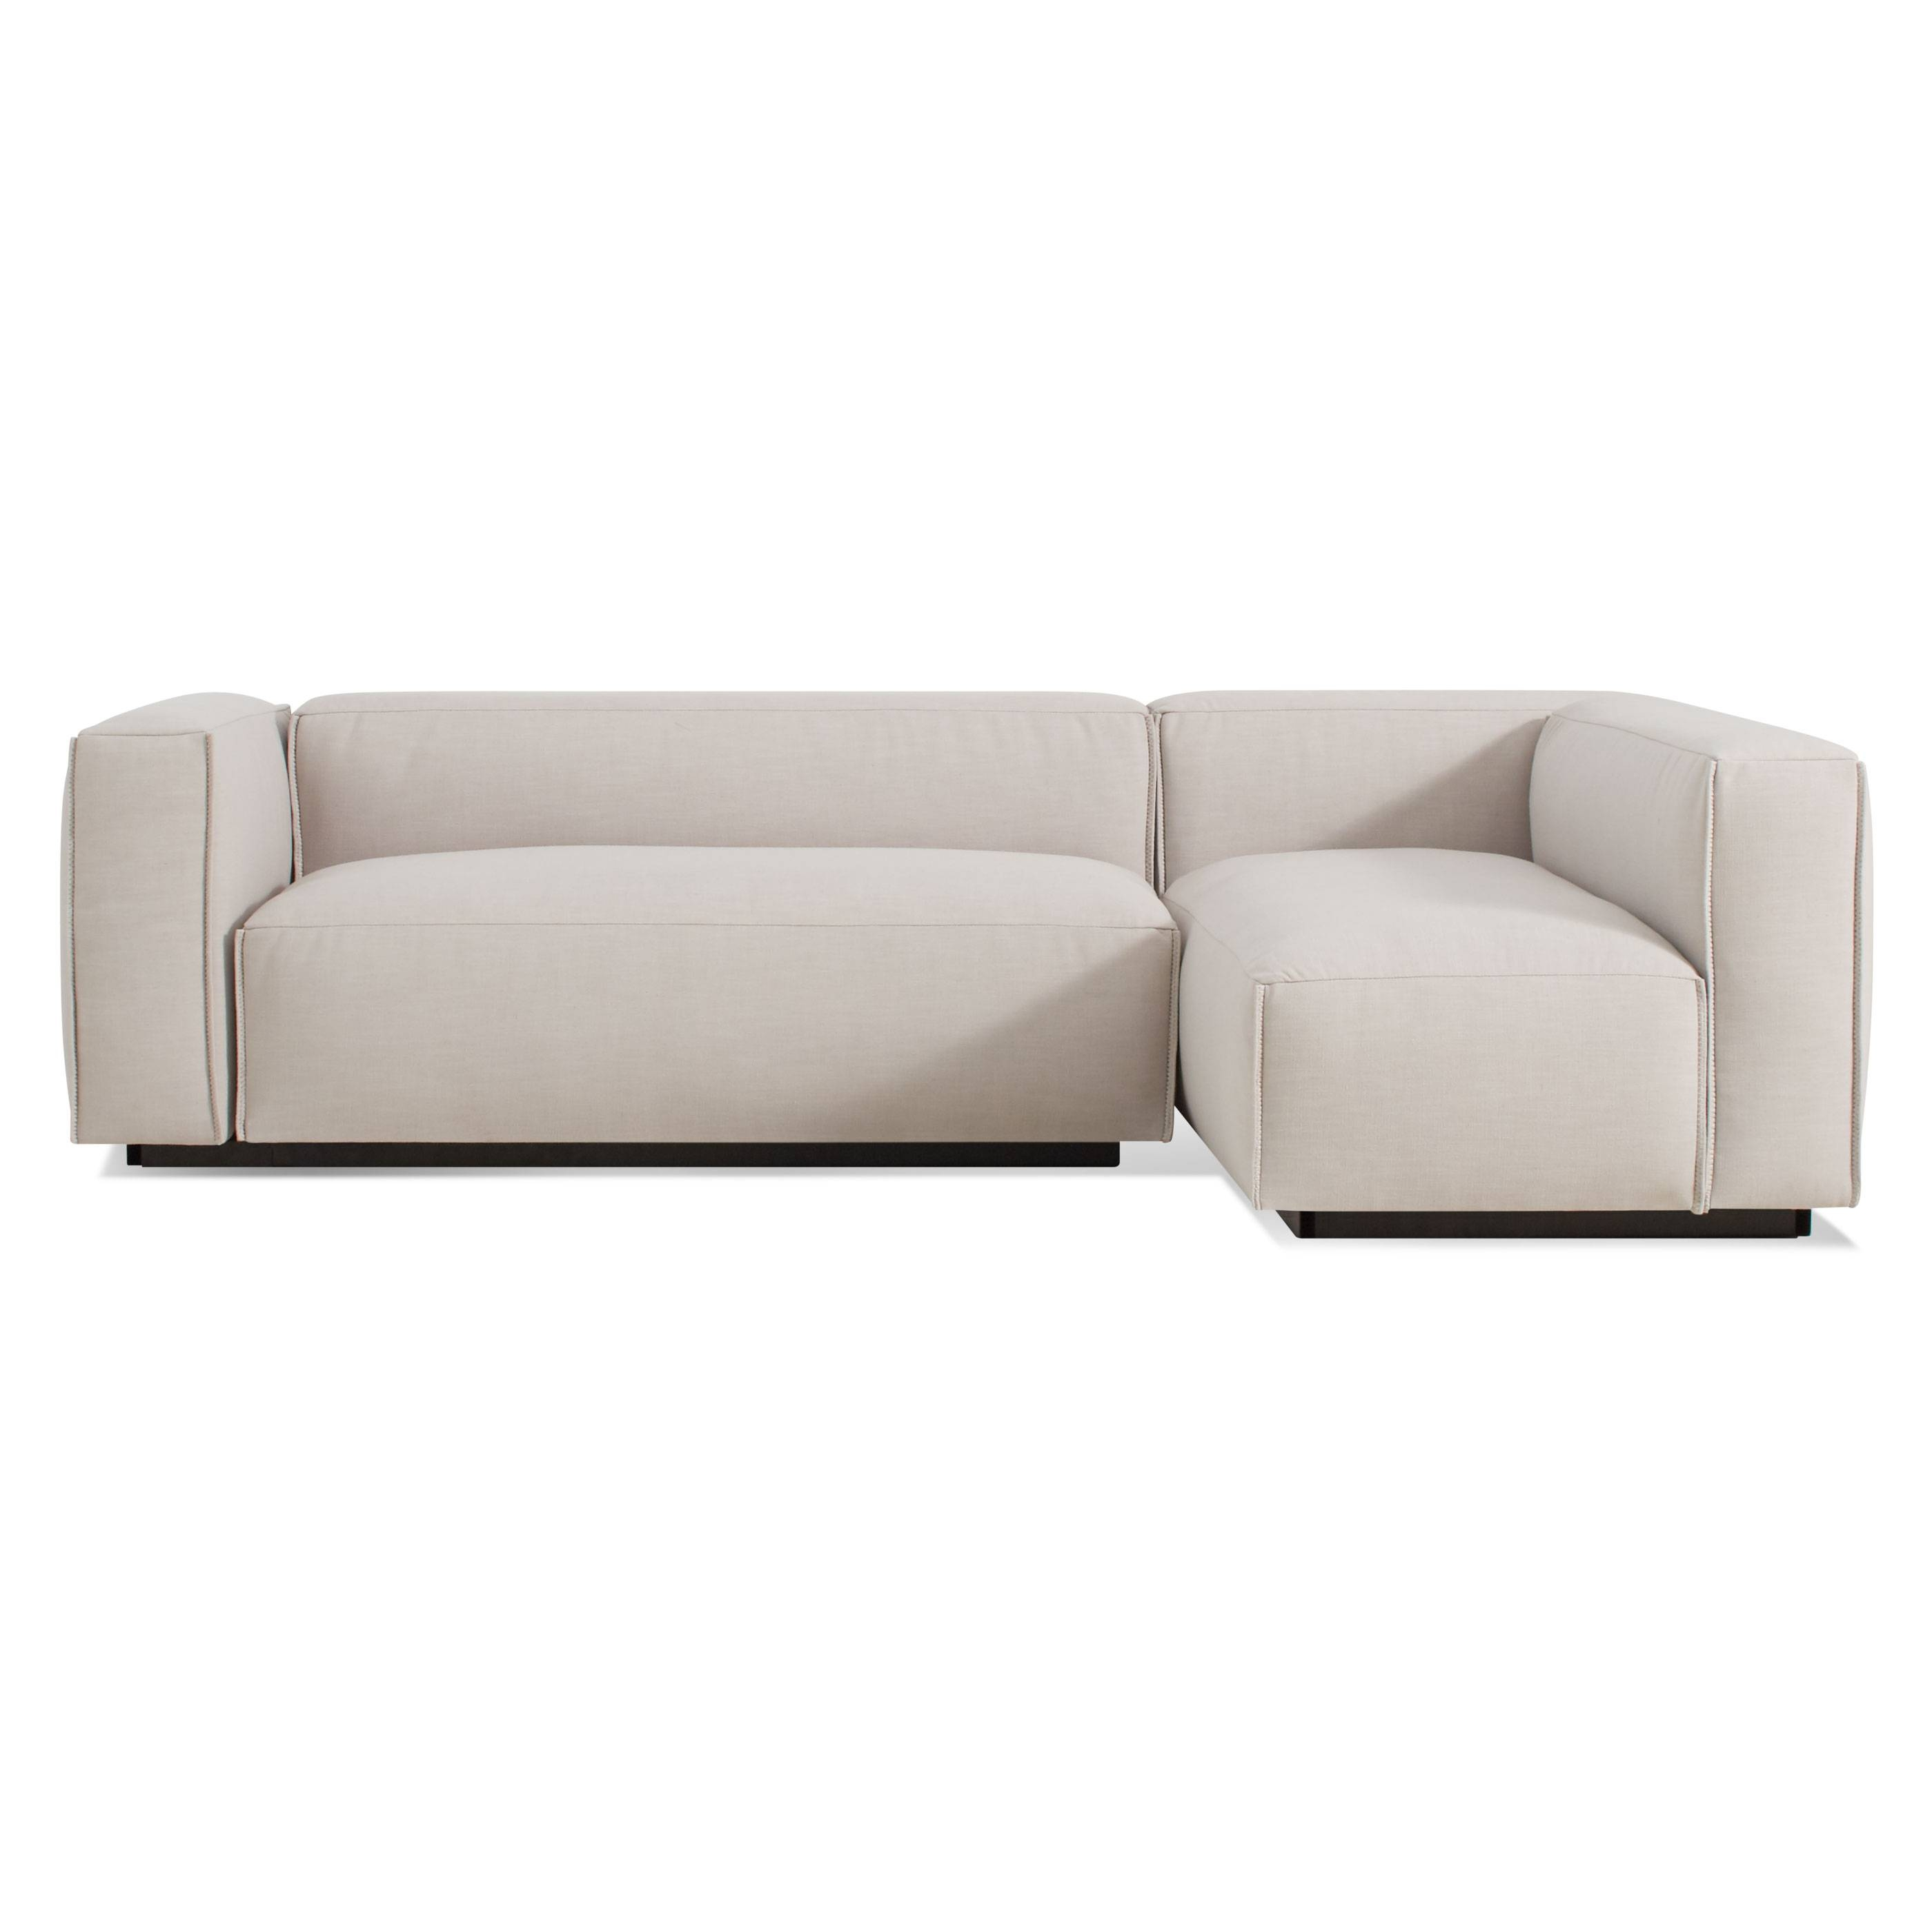 Cleon Small Modern Sectional Sofa | Blu Dot inside Mini Sectional Sofas (Image 4 of 30)